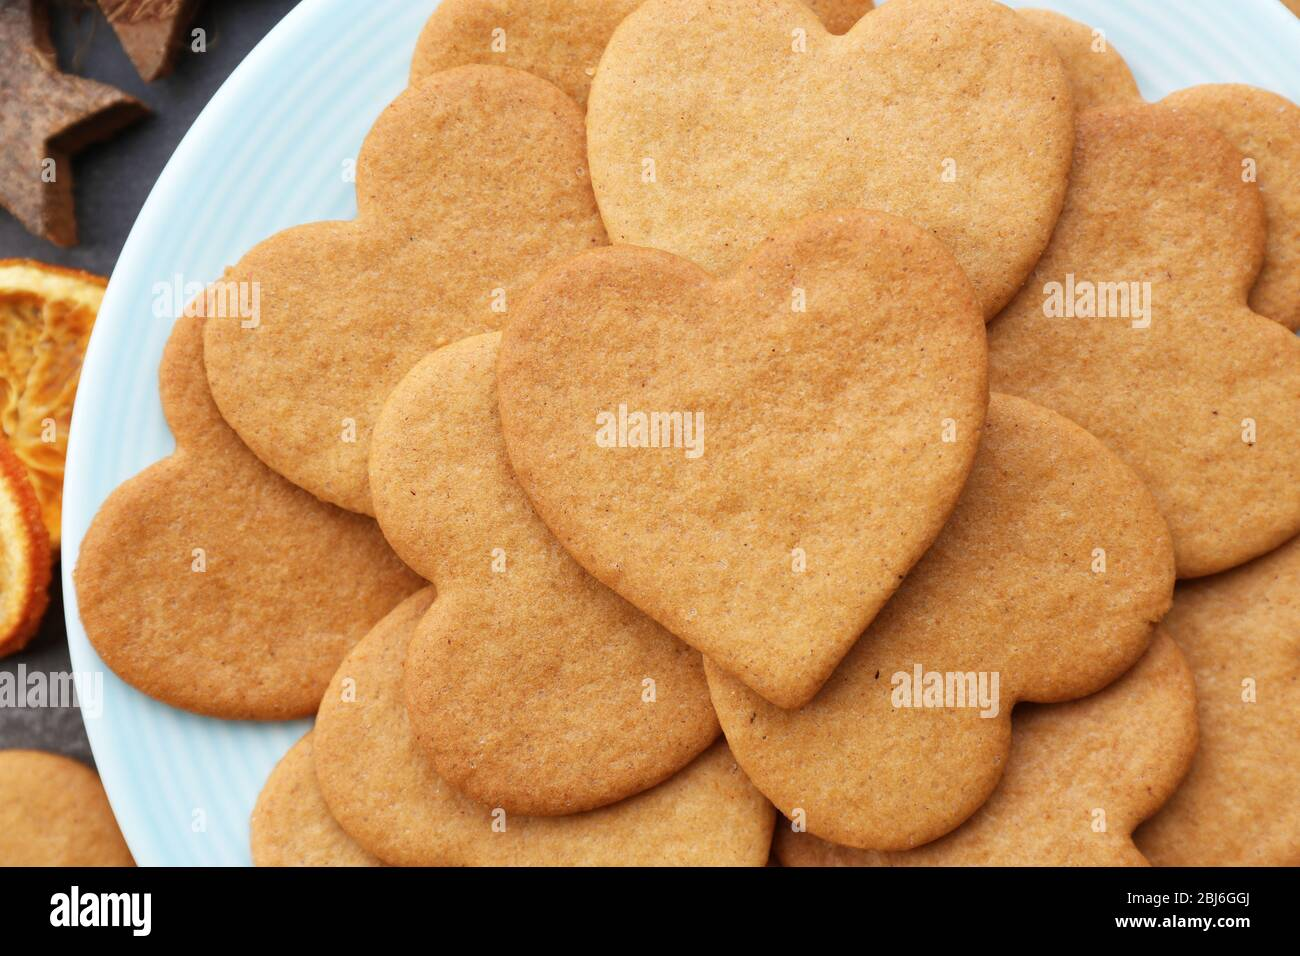 Heart Shaped Biscuits On Plate Top View Stock Photo Alamy